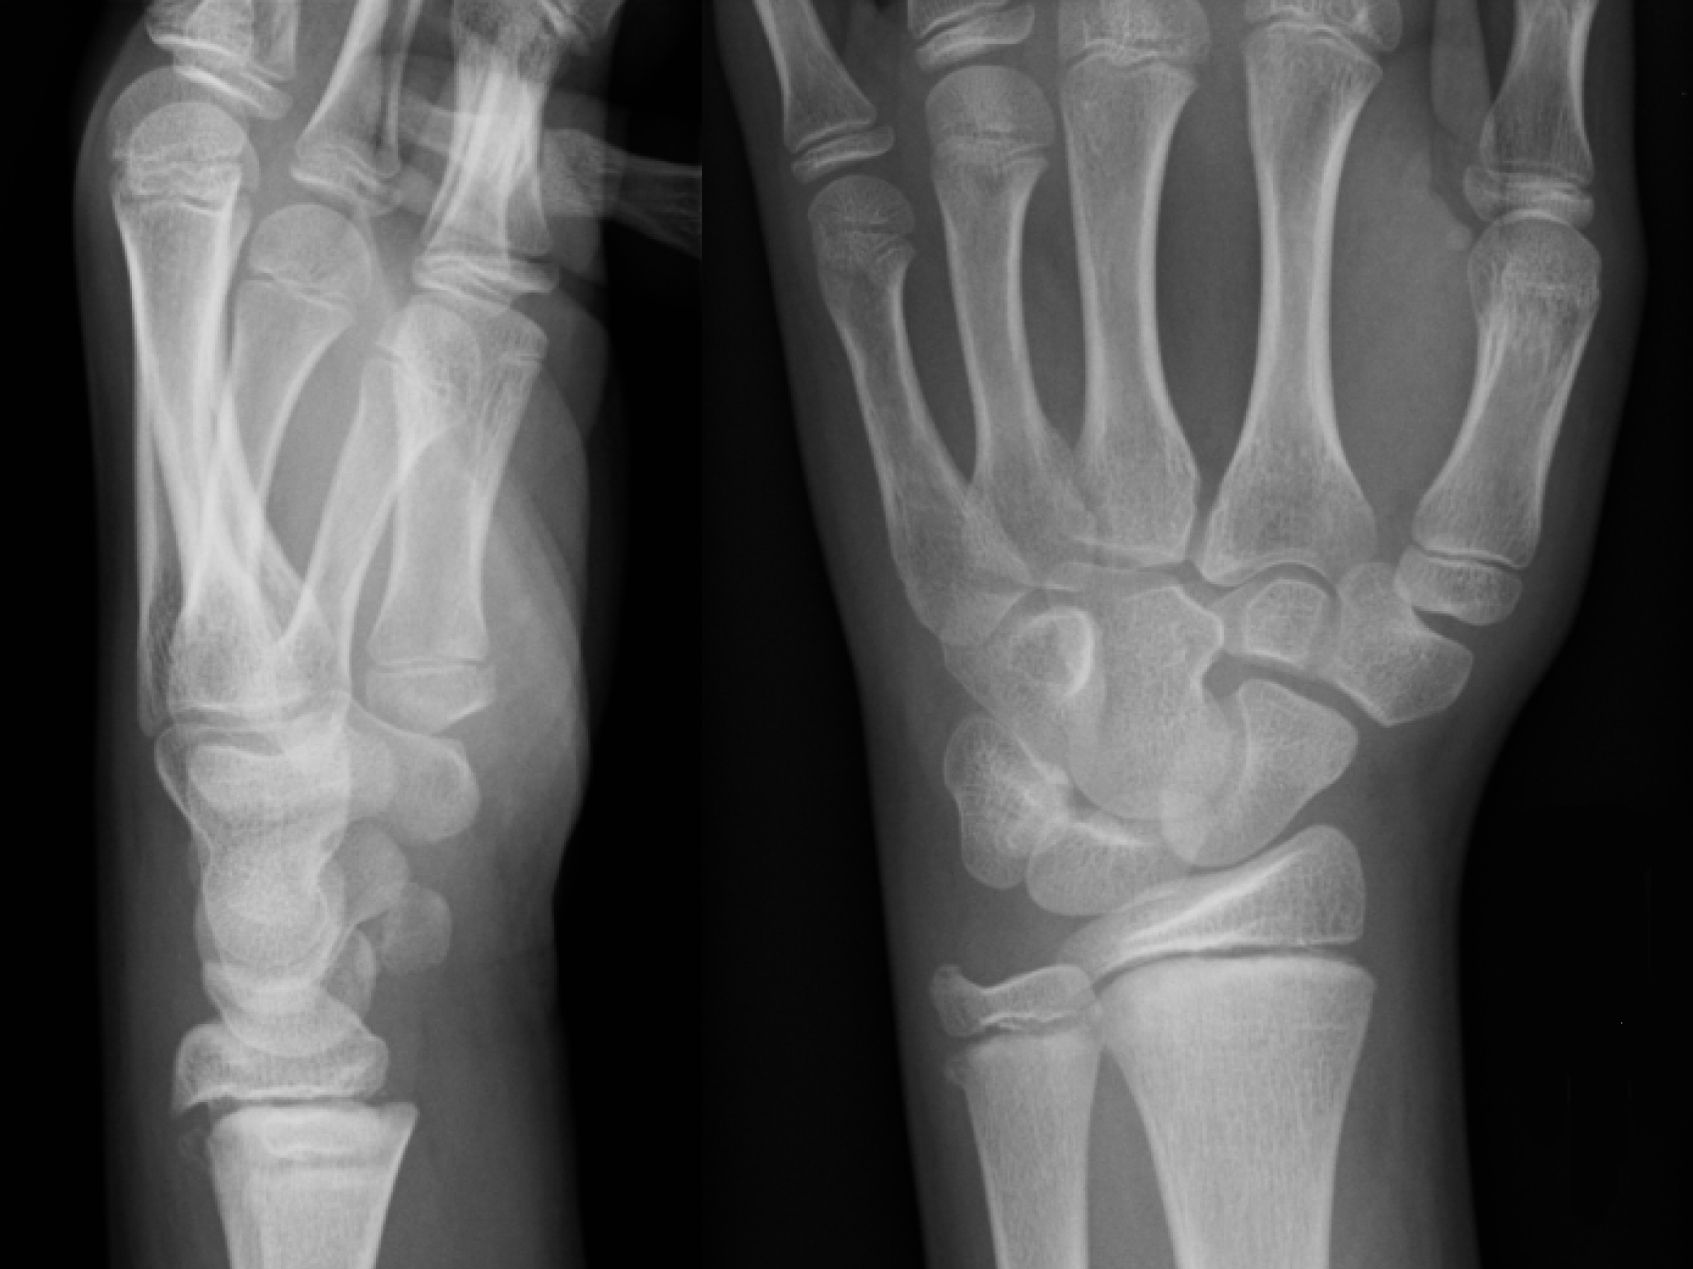 Bone and Bone Fractures